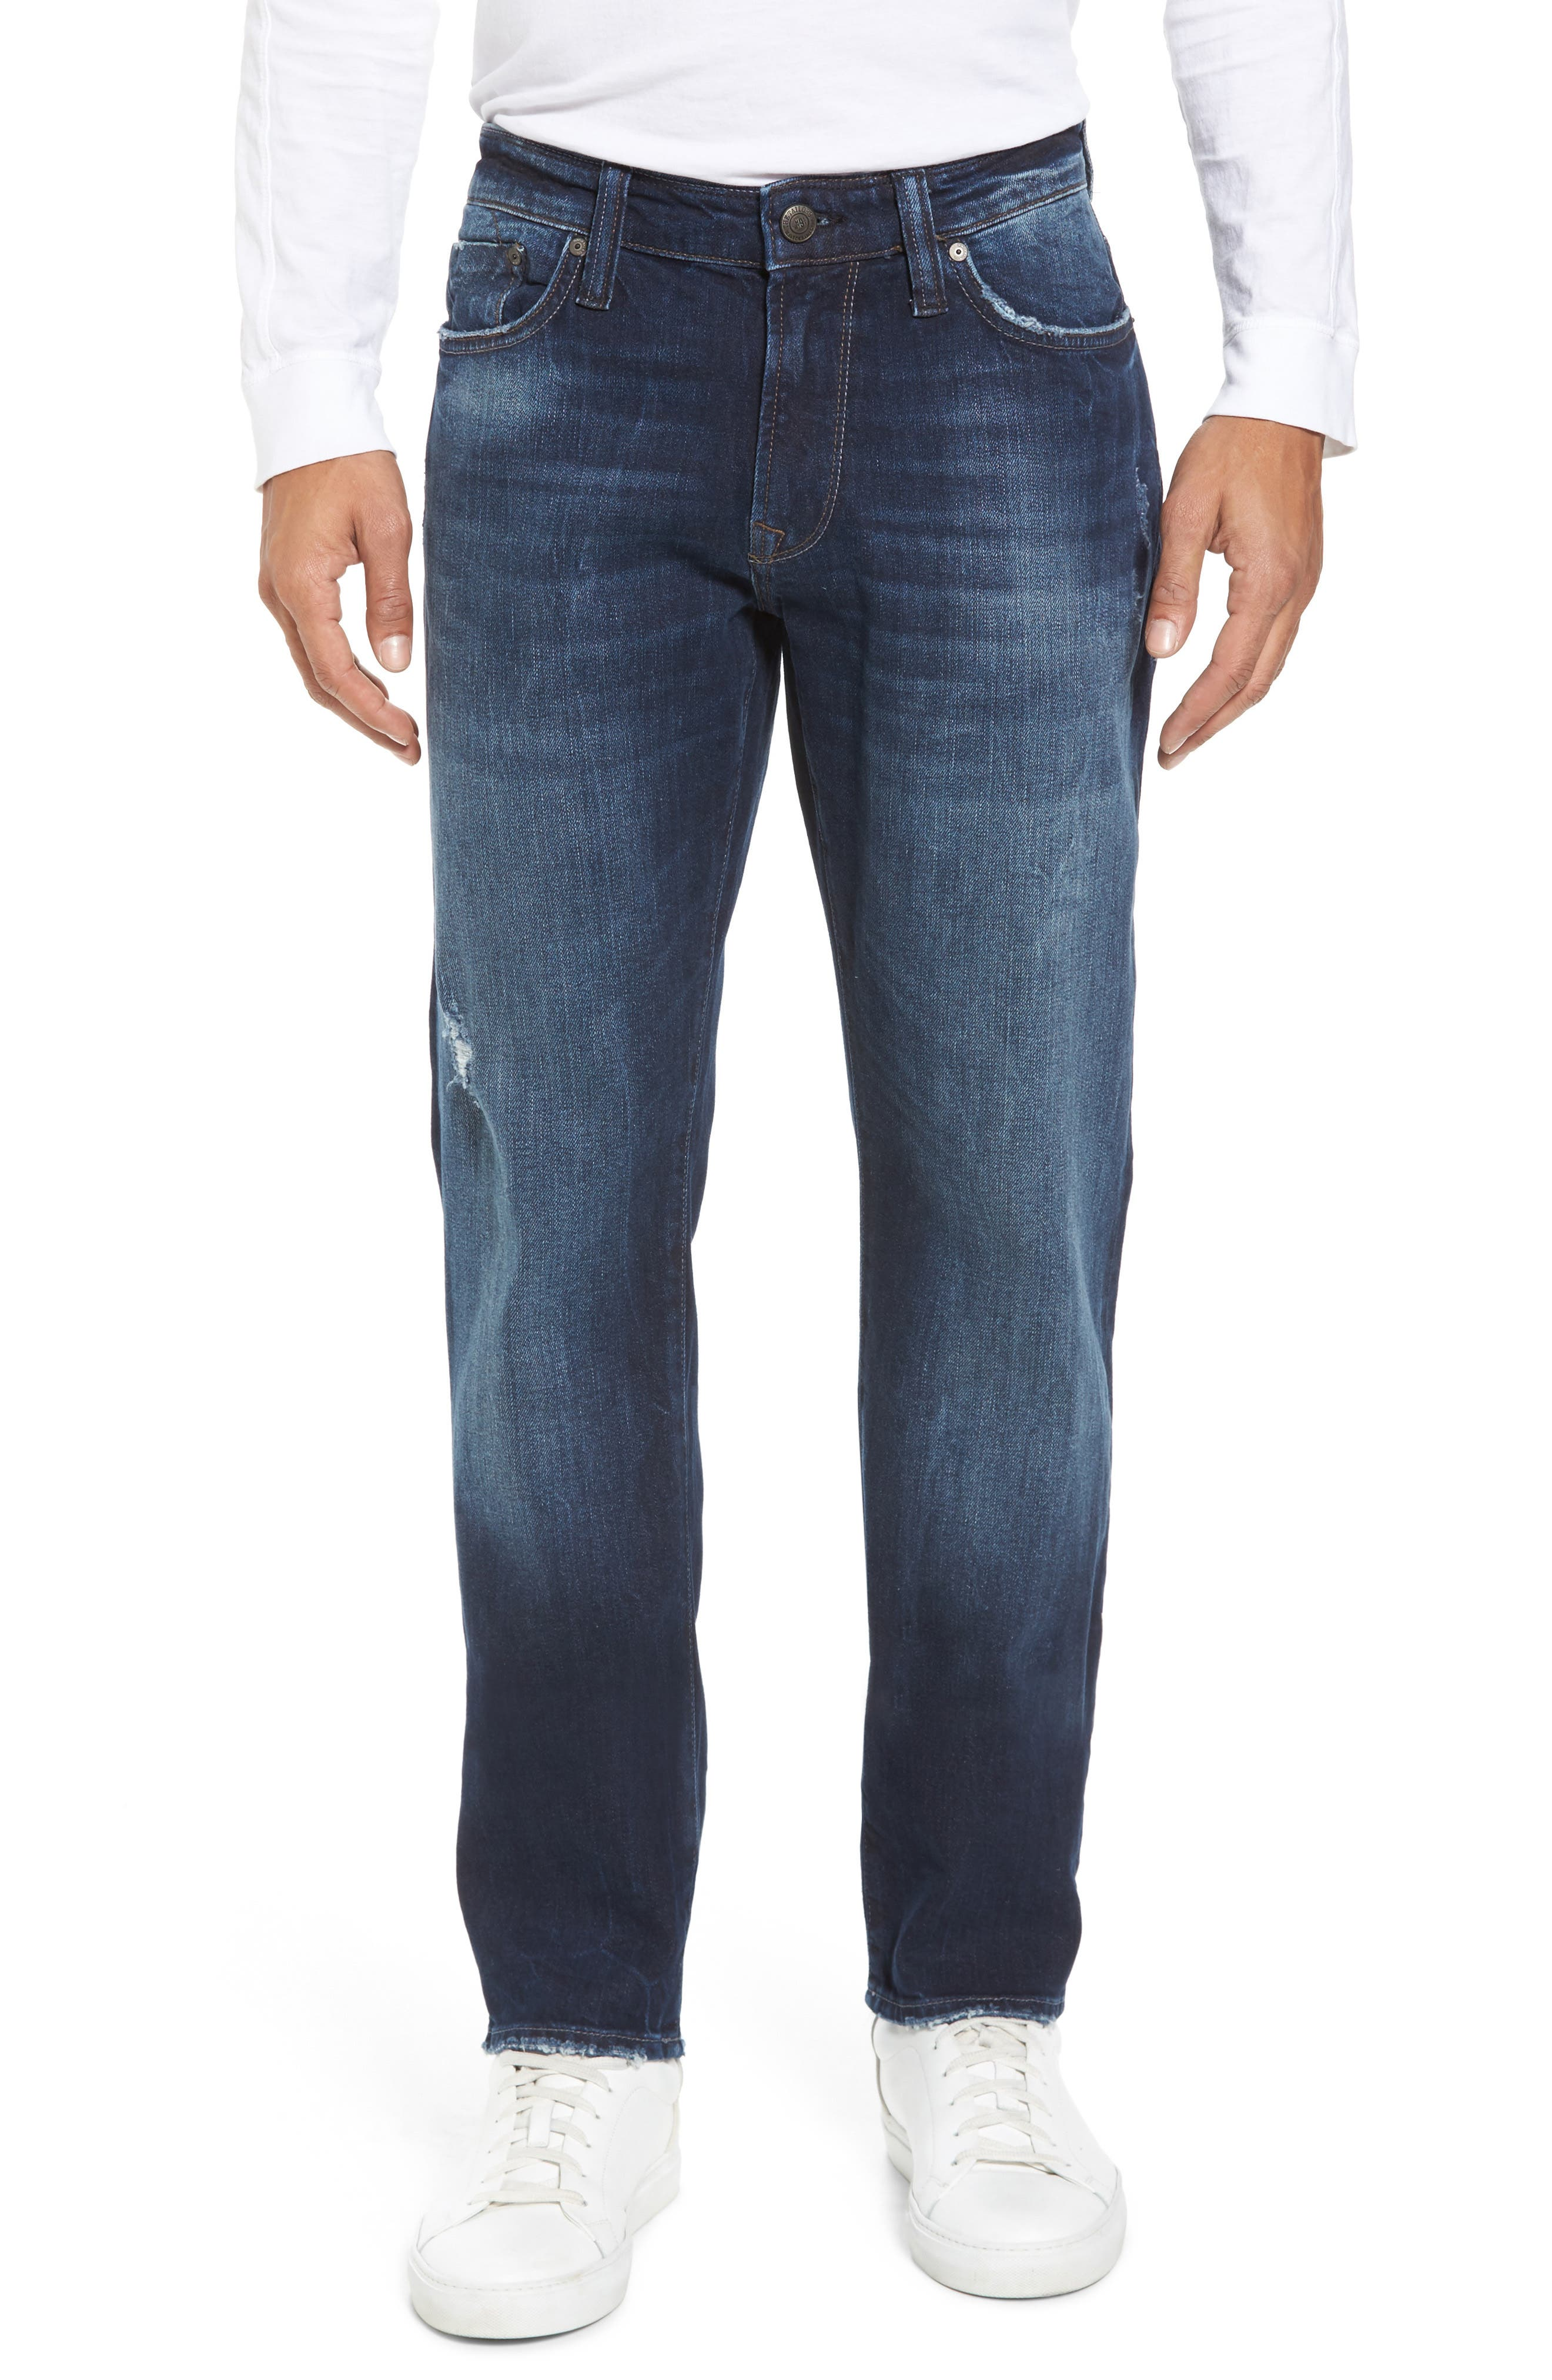 Marcus Slim Straight Leg Jeans,                             Main thumbnail 1, color,                             401